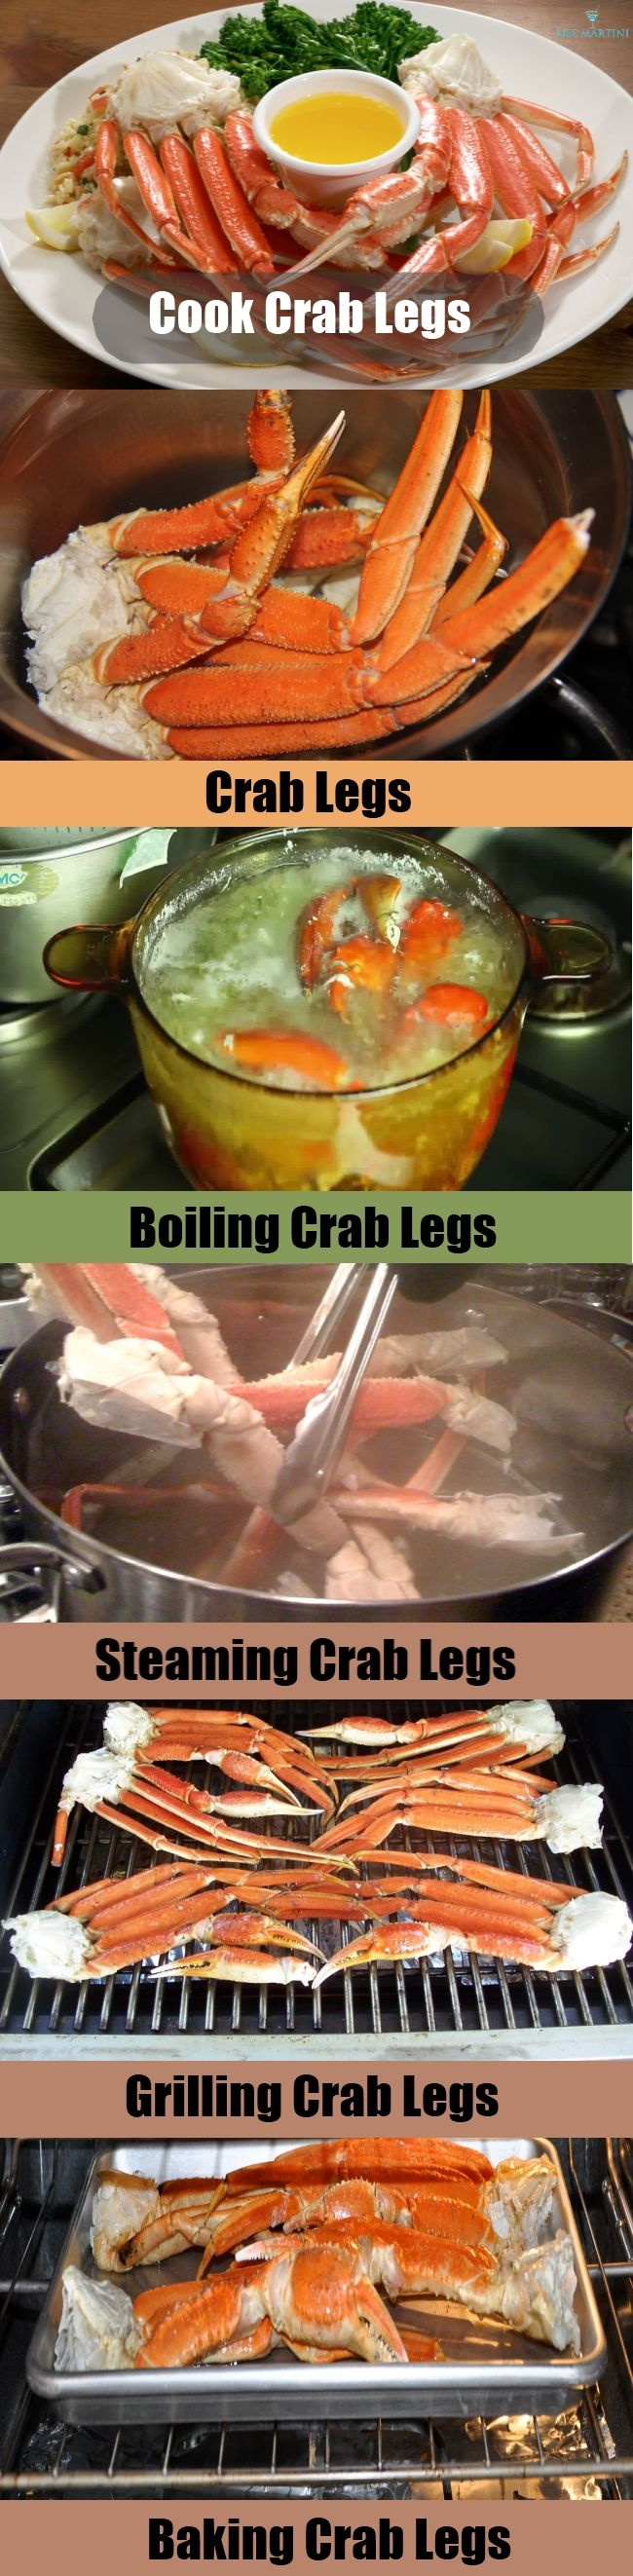 How To Cook Crab Legs | Goodfella's Grill and Bar is an American restaurant located in Lexington, SC that carries everything from burgers to wings to choice cut steaks and even nightly features! Call (803) 951-4663 or visit https://www.facebook.com/goodfellasgandb for more information!